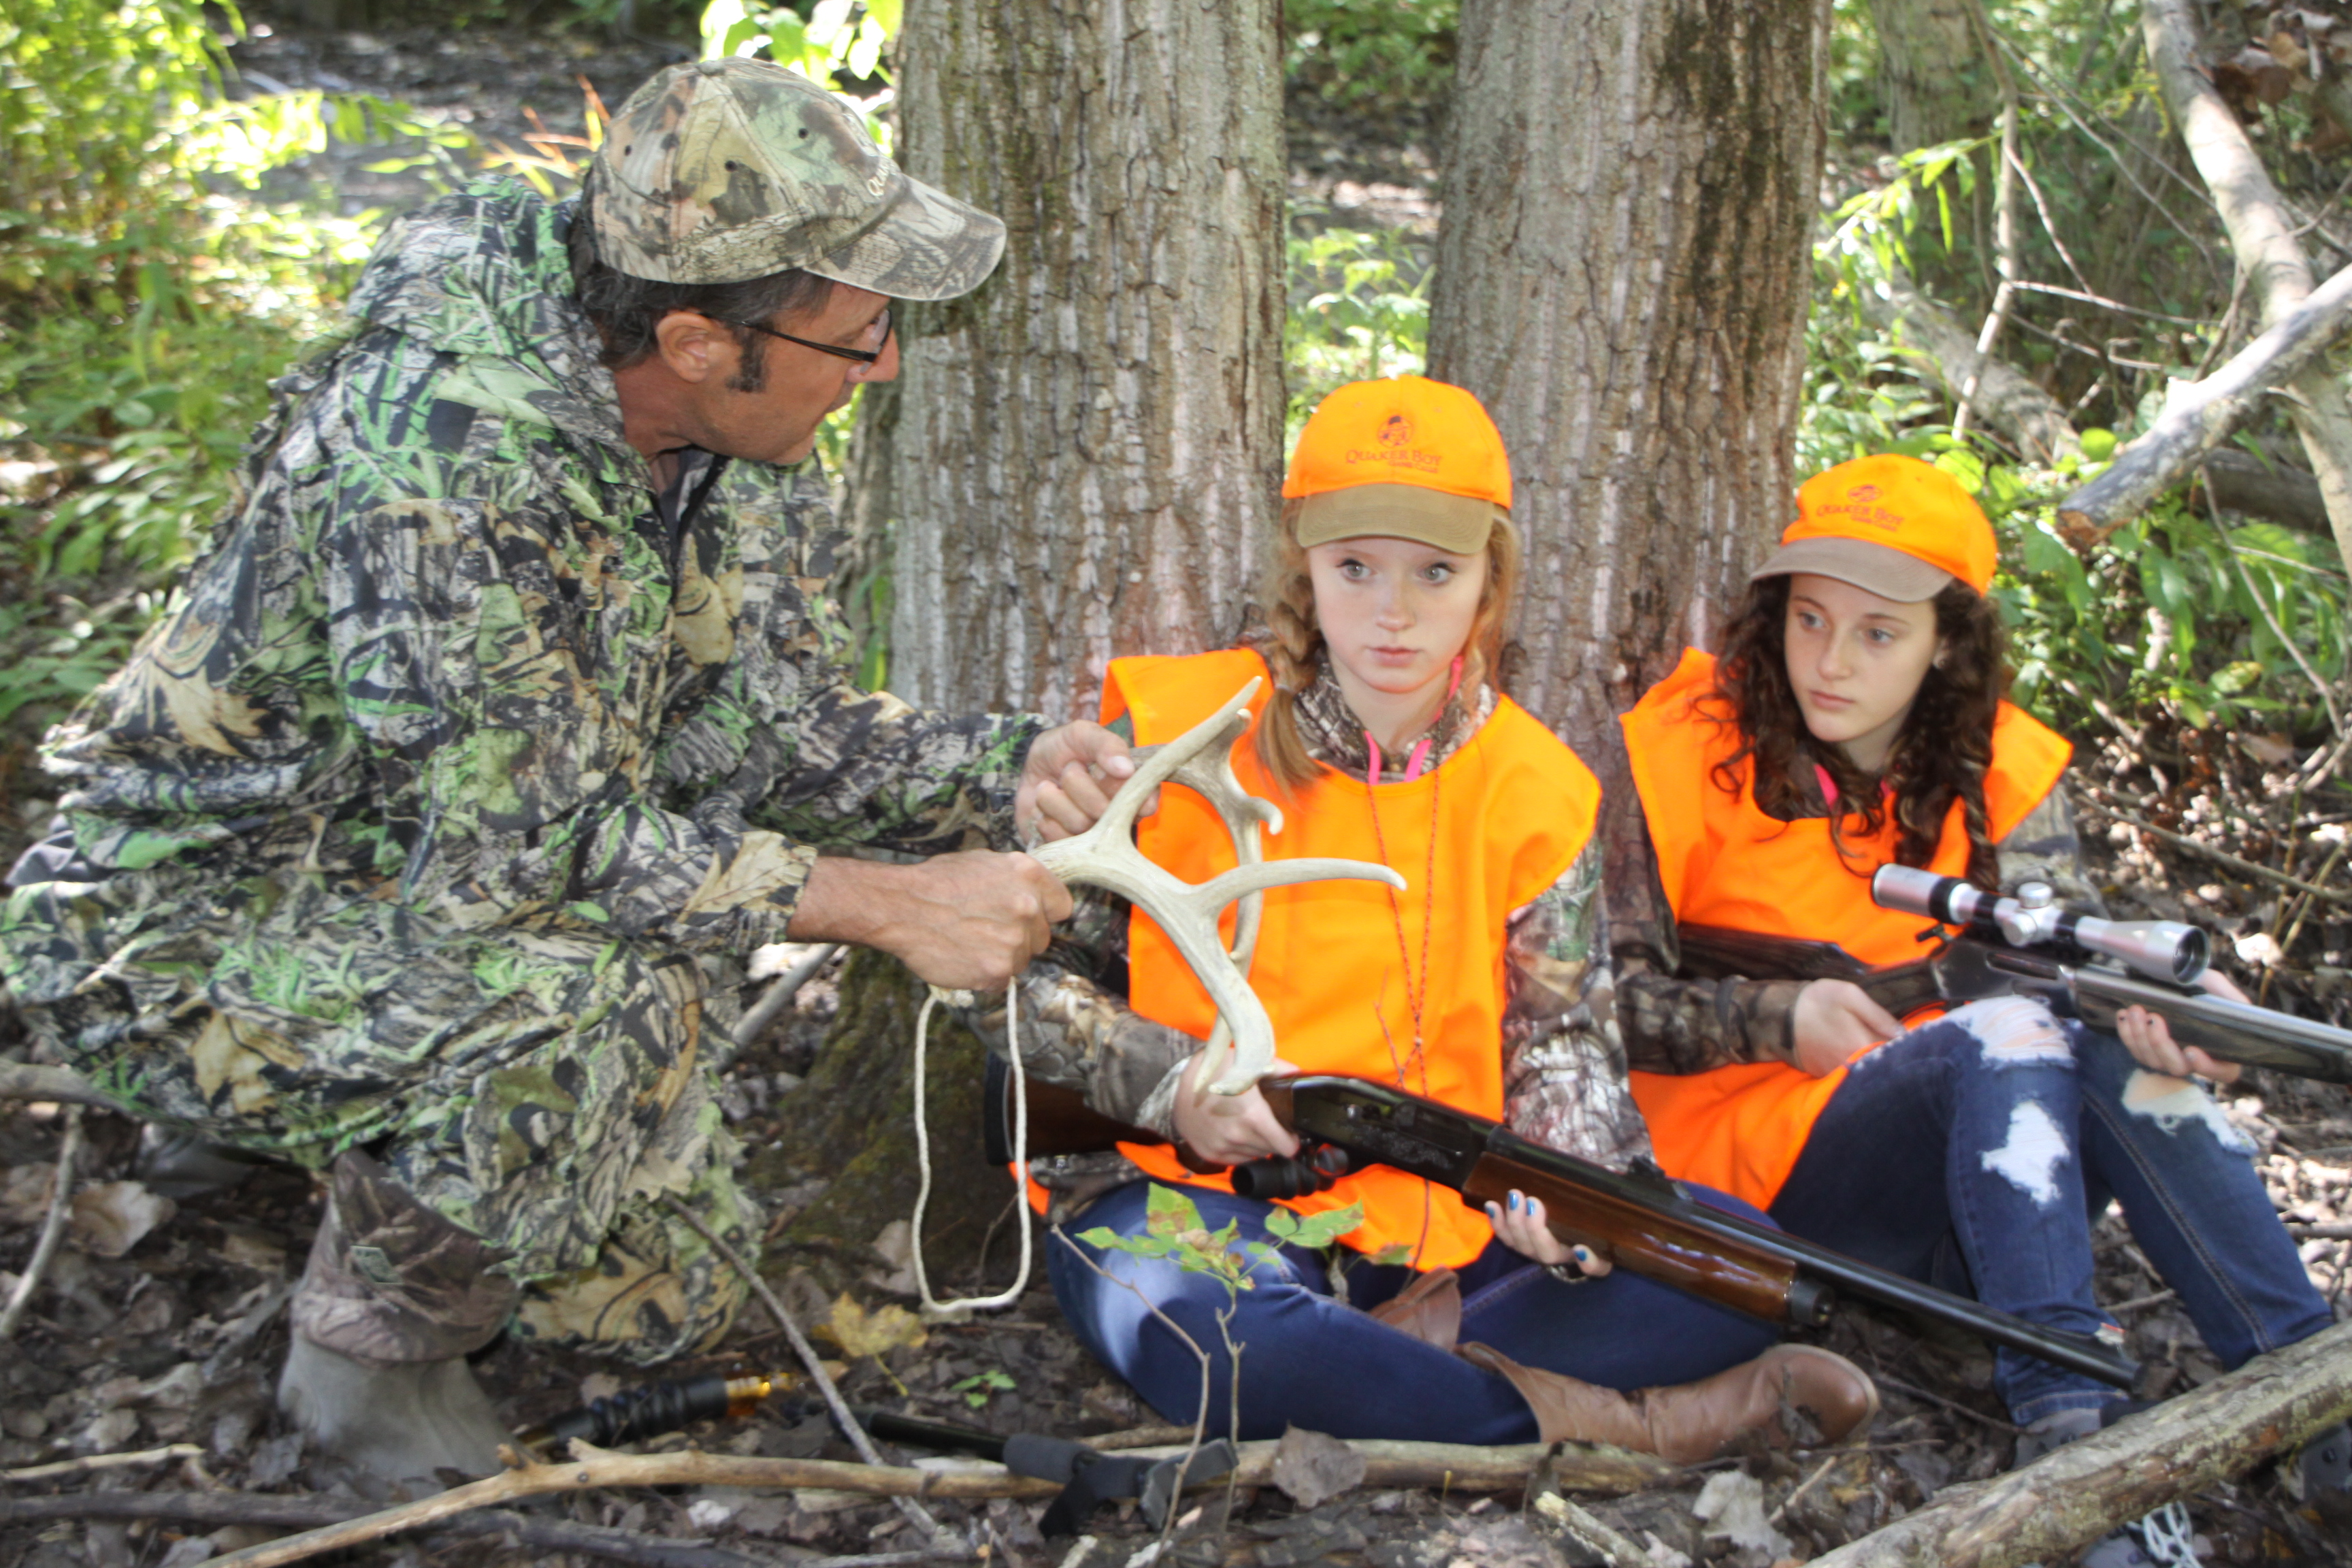 Arnie Jonathan of Lockport deomonstrates rattling antler tips to Emily Eaton and Emma Syracuse before any hunting actually takes place.